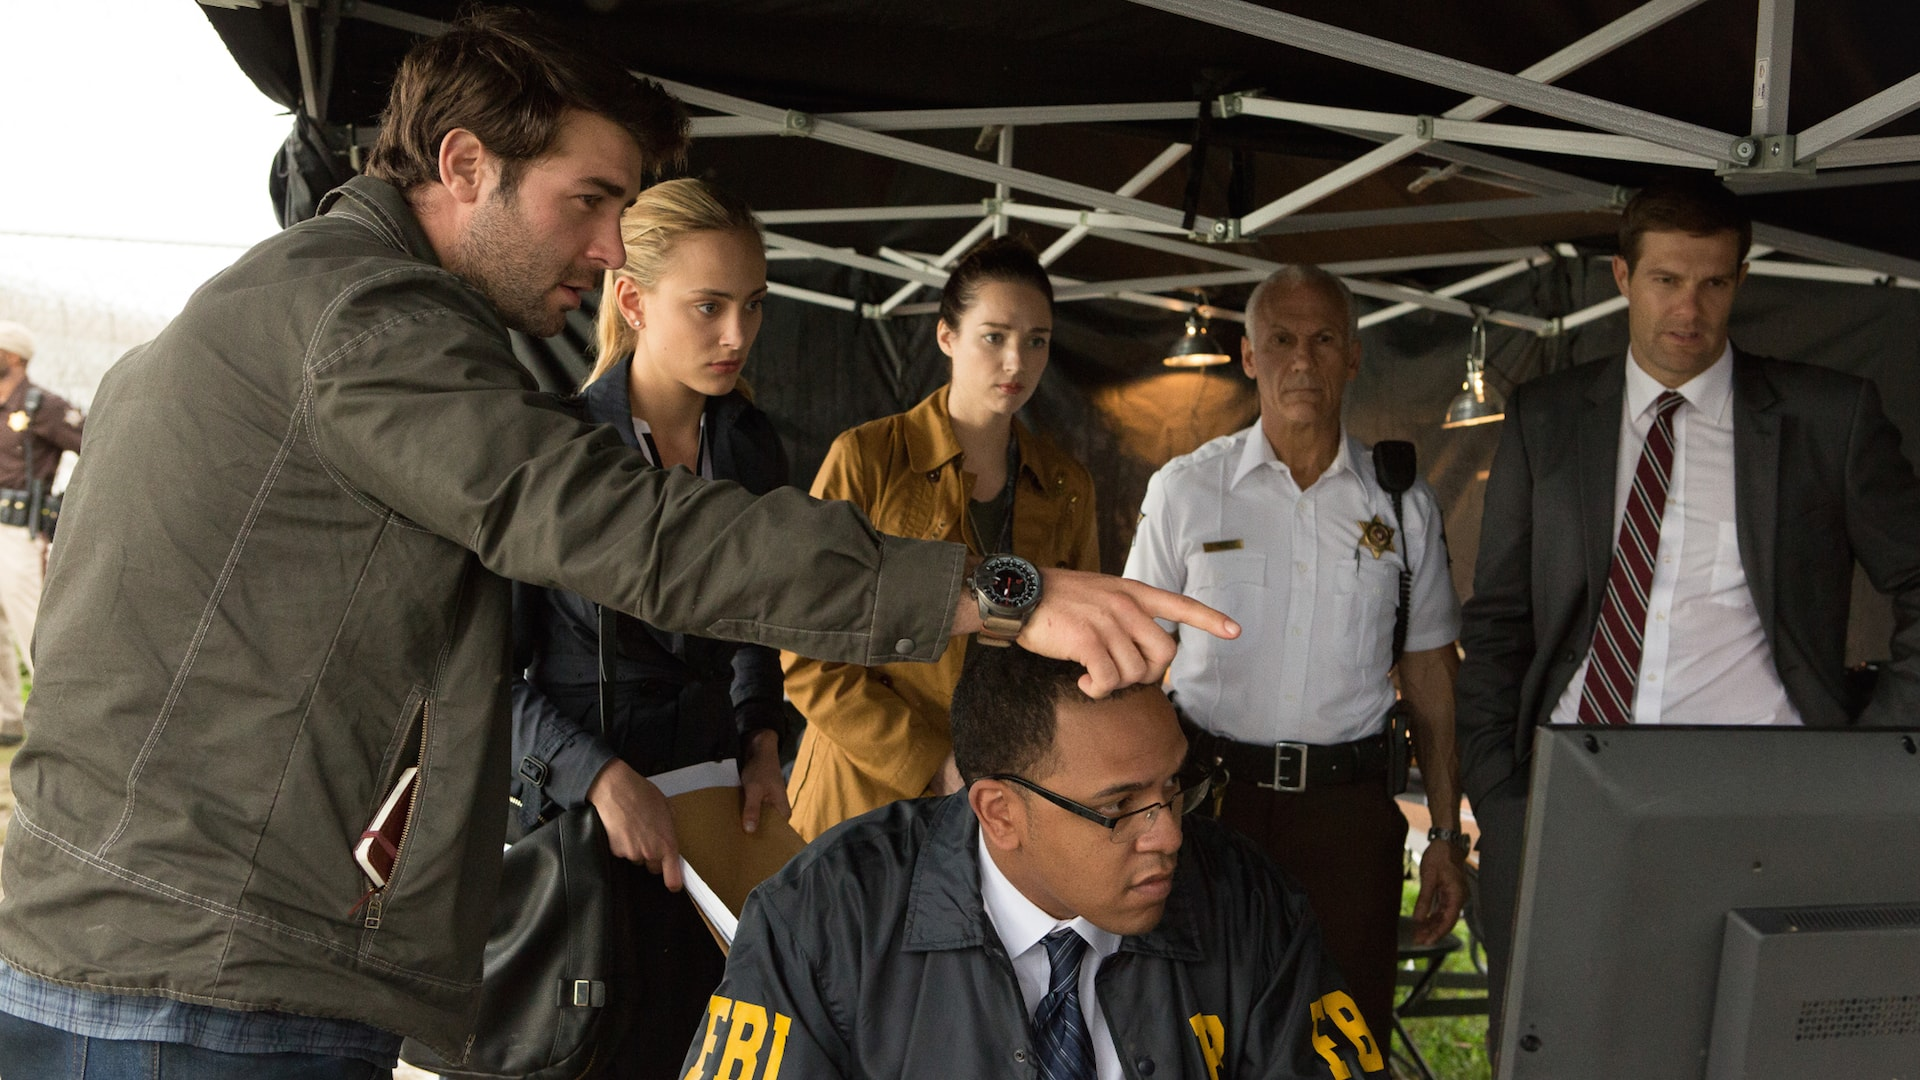 James Wolk as Jackson Oz, Nora Arnezeder as Chloe Tousignant, Kristen Connolly as Jamie Campbell, Don Yesso as Deputy Kraft, and Geoff Stults as Agent Ben Shaffe.